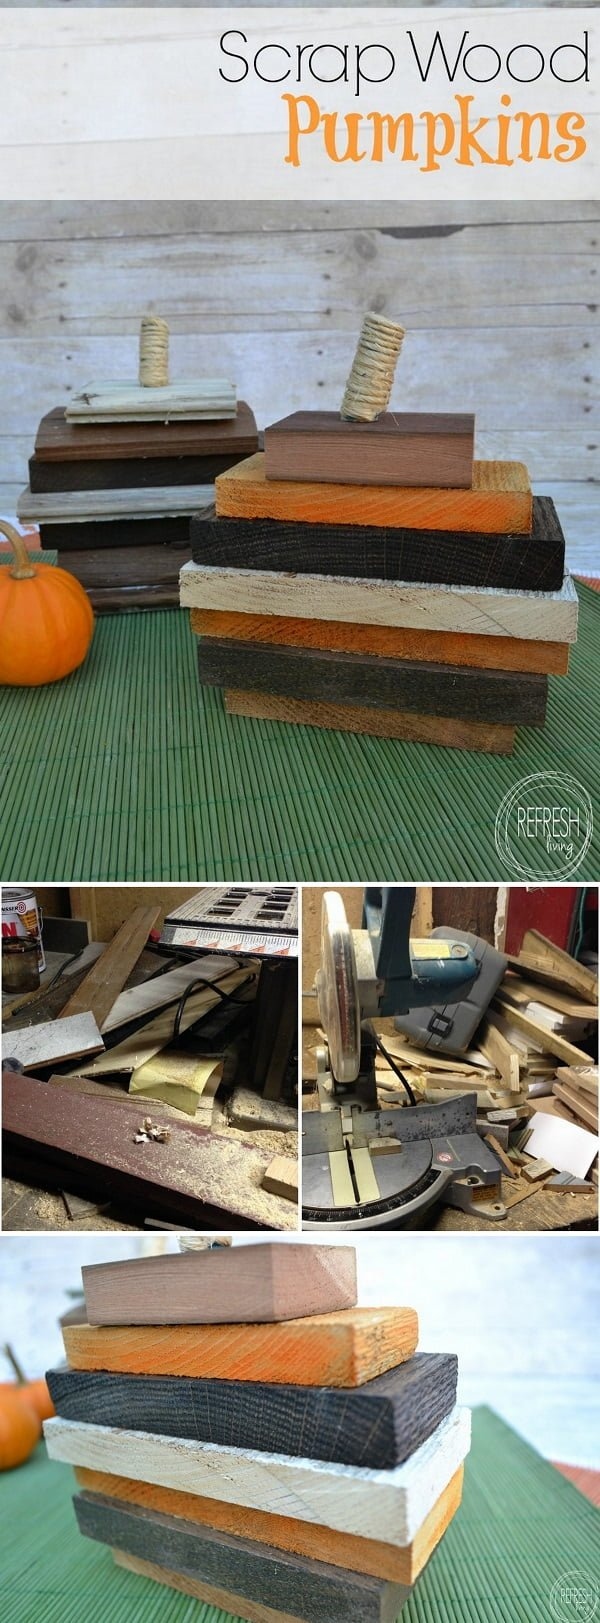 Check out the tutorial on how to make #DIY #rustic #recycled wood pumpkins #woodworking #homedecor